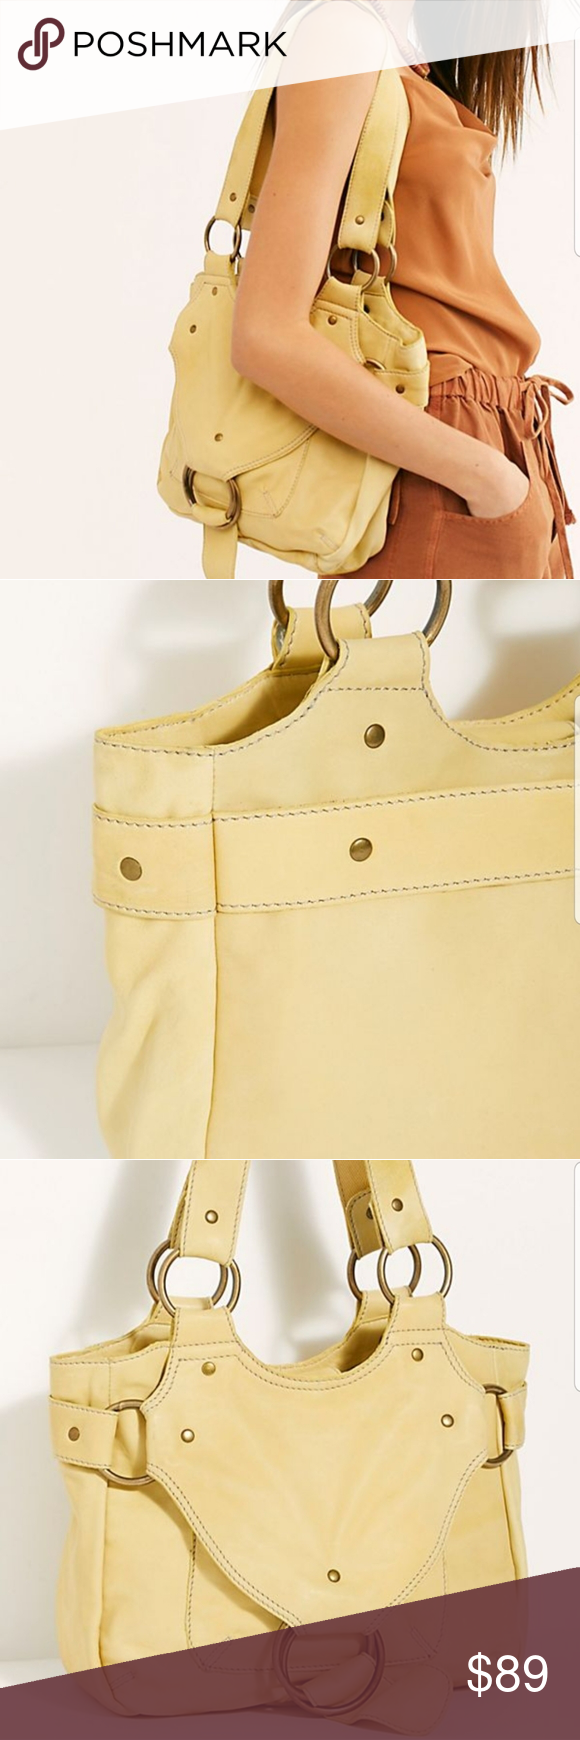 Free People Bardot Yellow Leather Womens Tote Bag New